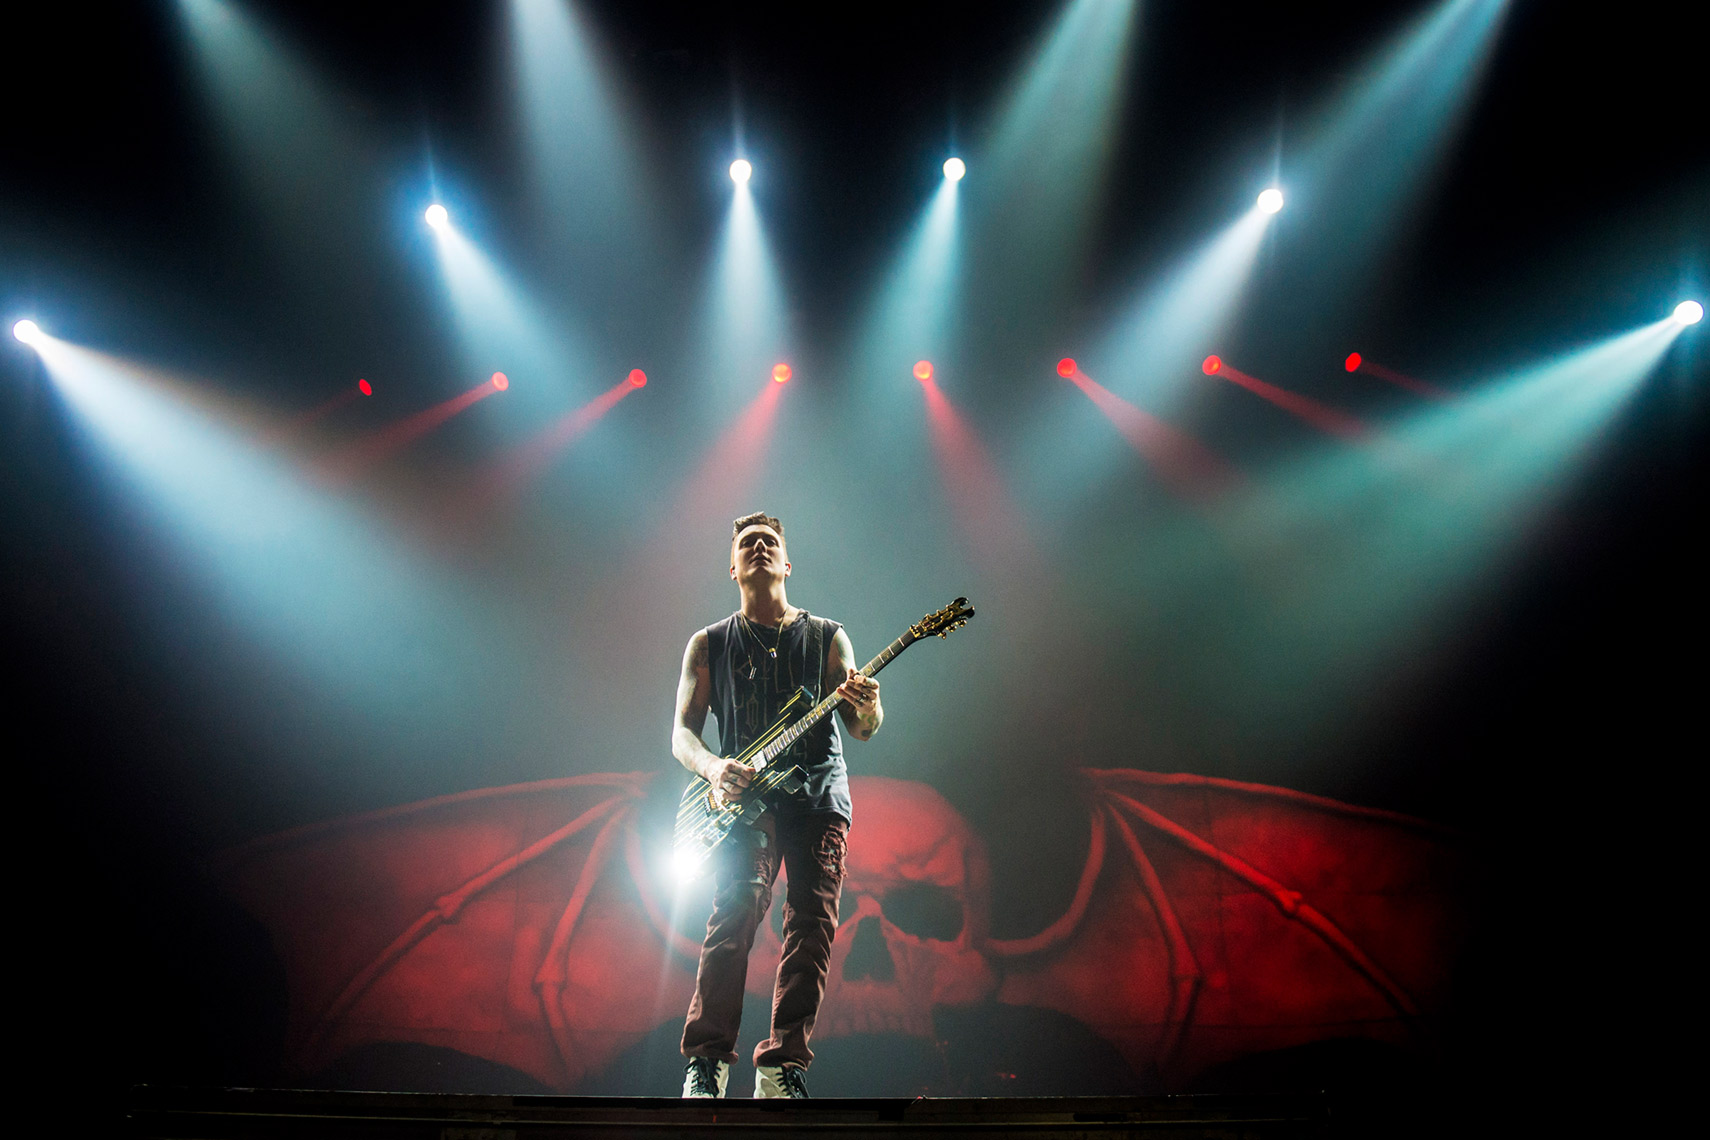 Synster-Gates-Avenged-Sevenfold-Wembley-Arena-1-December-2013.jpg